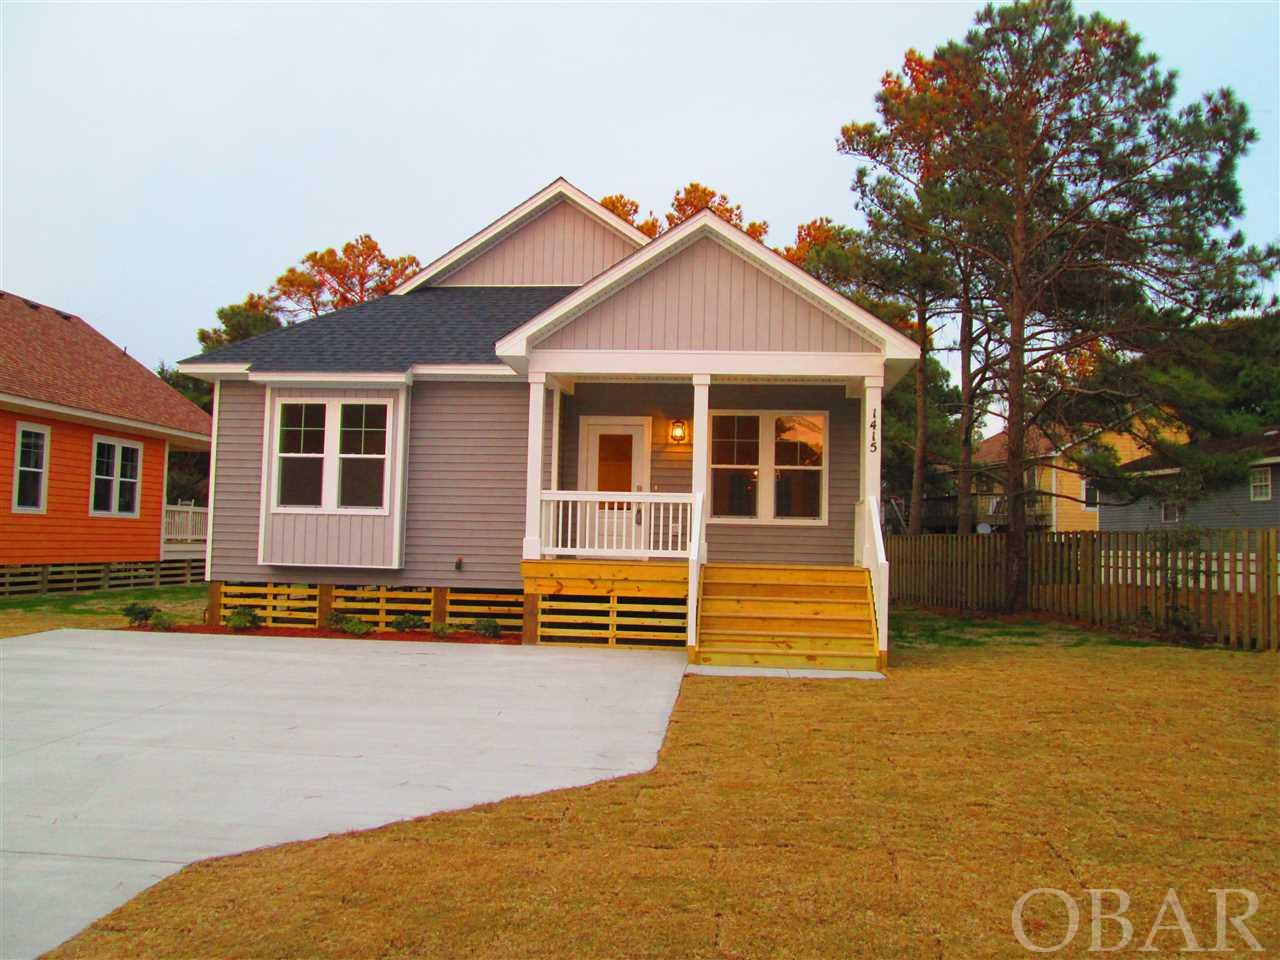 1415 Percy Street,Kill Devil Hills,NC 27948,3 Bedrooms Bedrooms,2 BathroomsBathrooms,Residential,Percy Street,96796